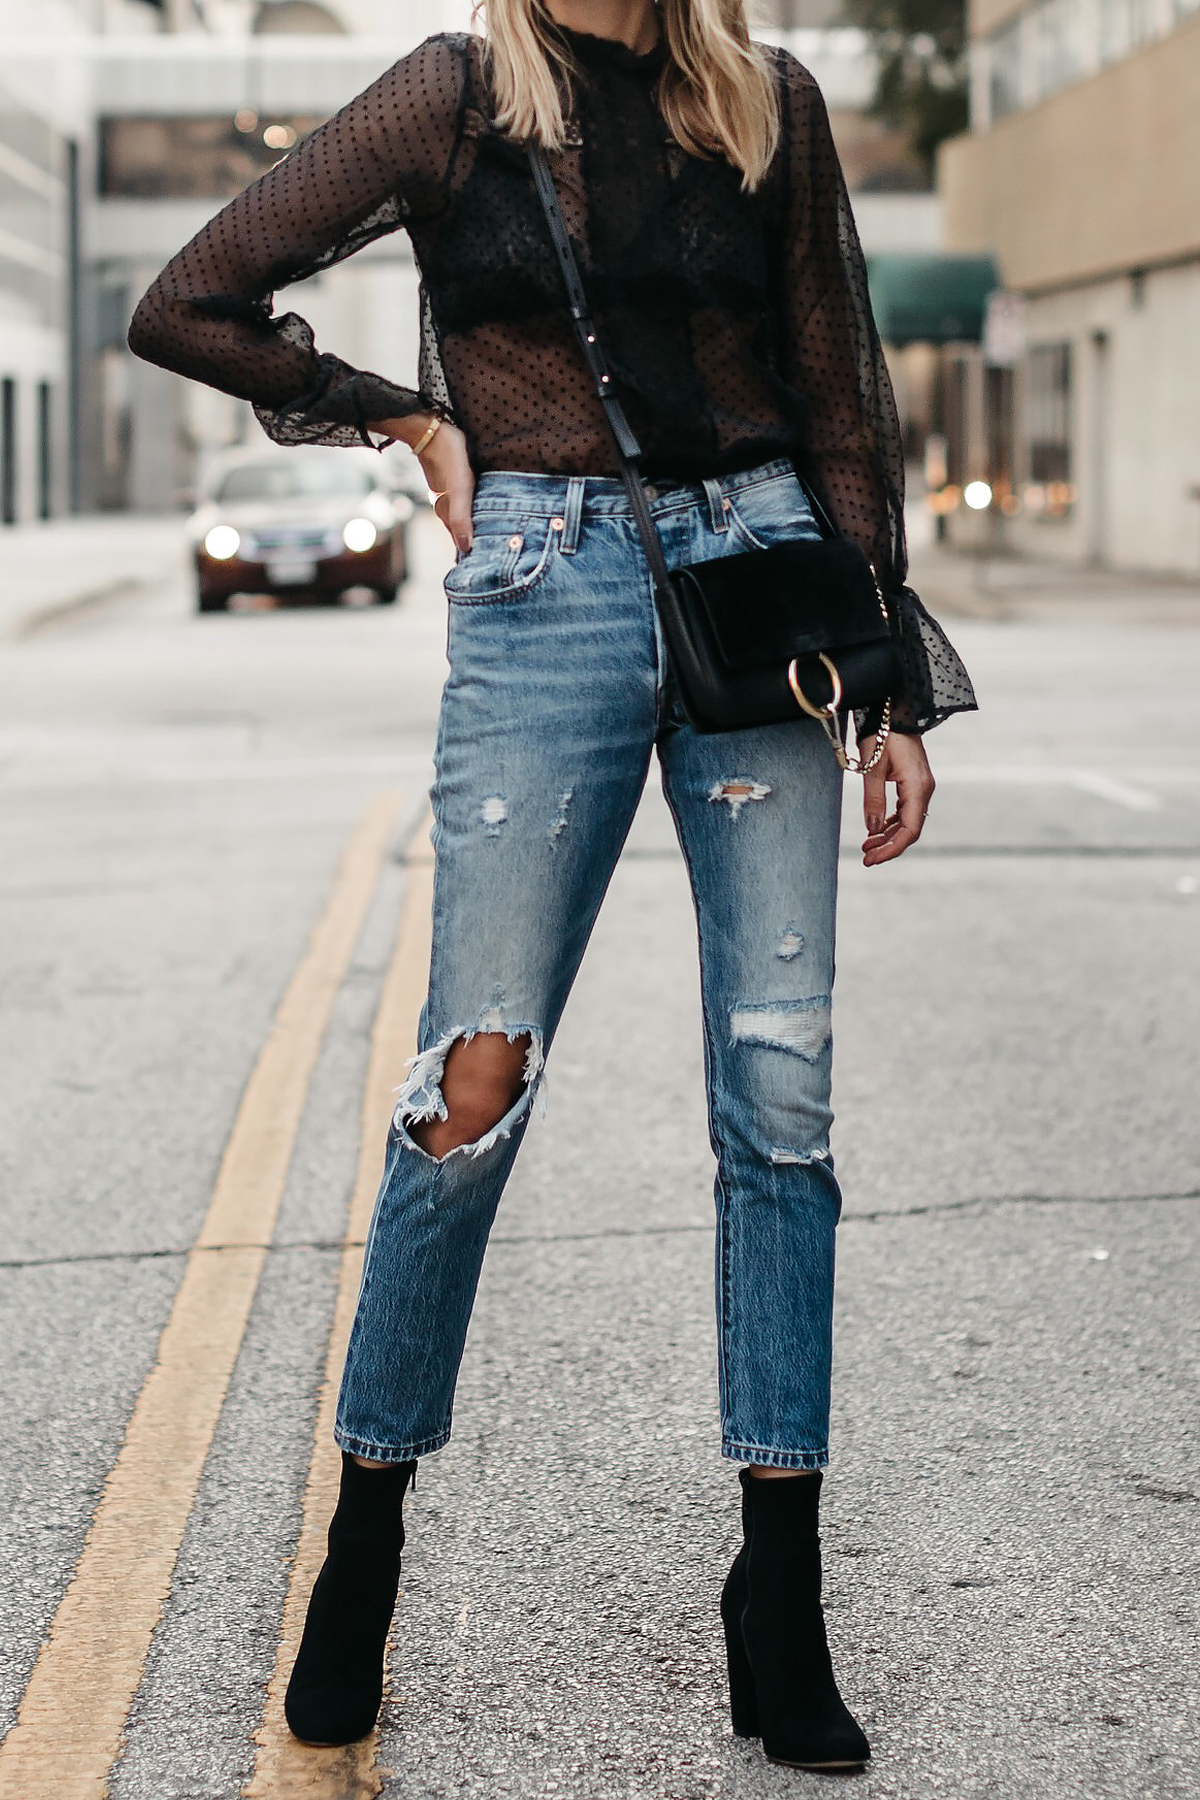 Anine Bing Black Lace Top Chloe Faye Black Handbag Denim Ripped Jeans Club Monaco Black Ankle Booties Fashion Jackson Dallas Blogger Fashion Blogger Street Style